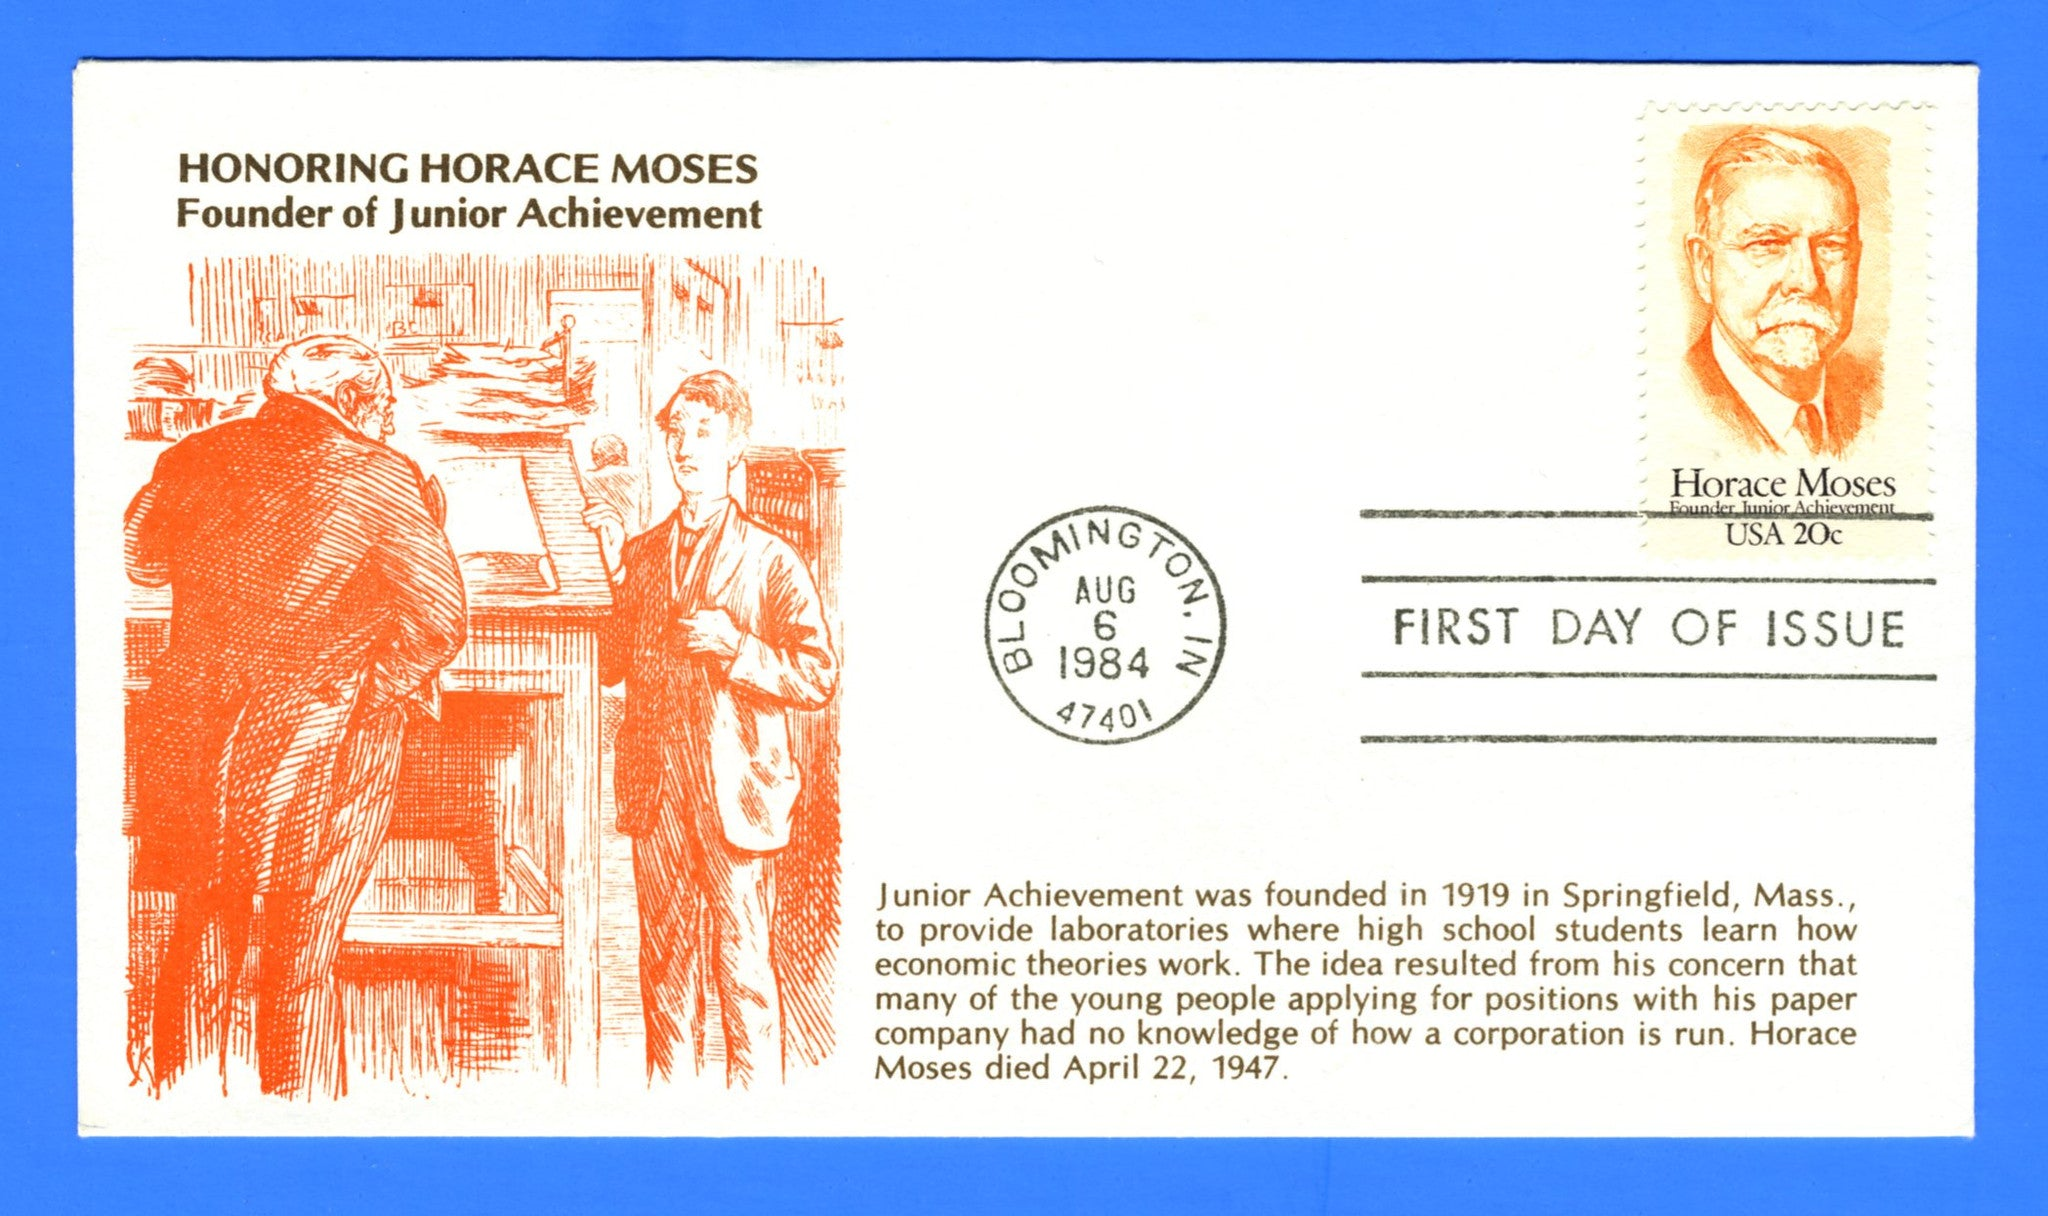 Scott 2095 Horace Moses Founder Junior Achievement First Day Cover by KMC Venture